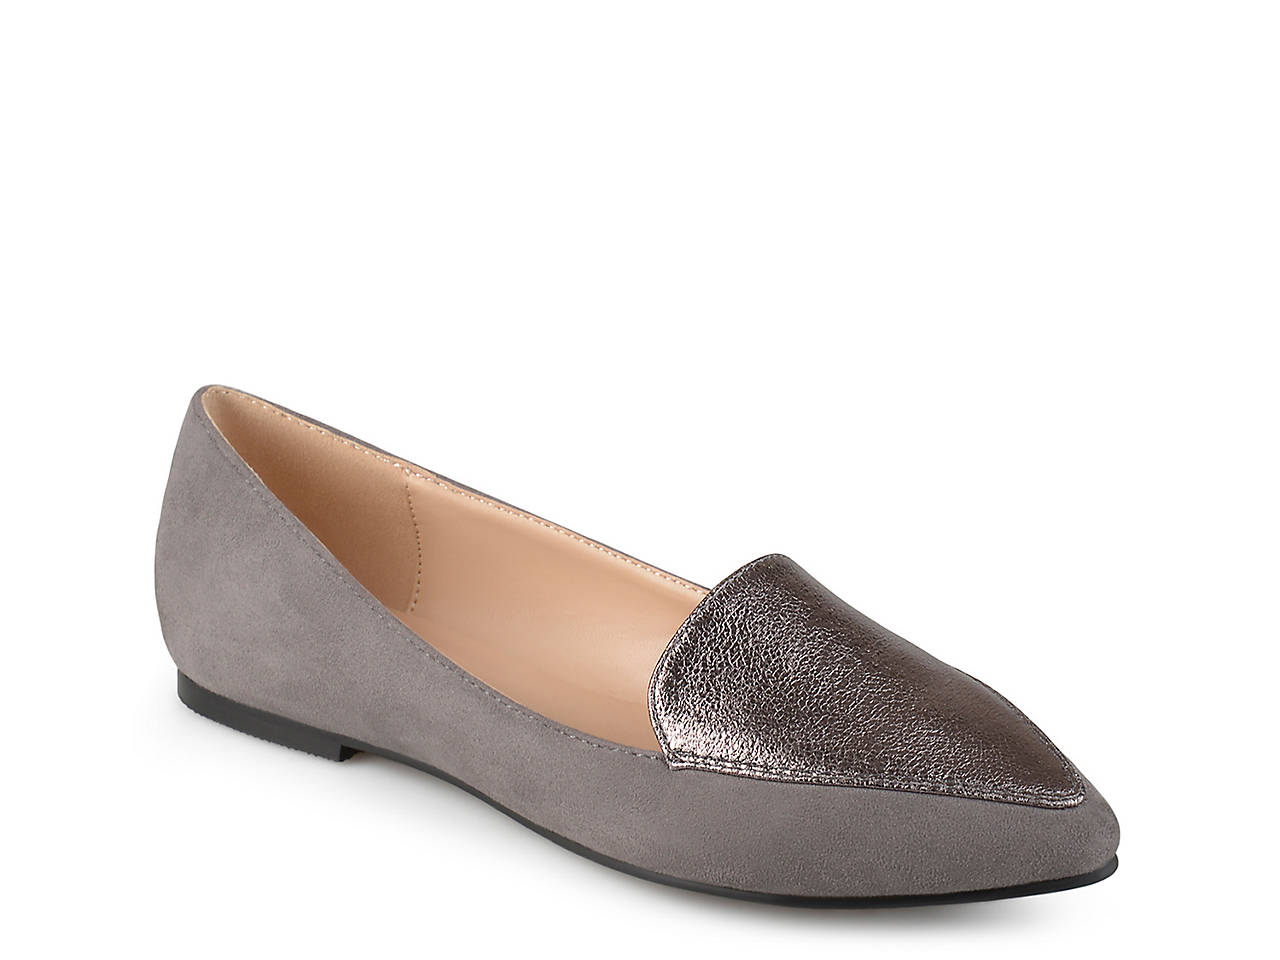 fb1202f53a8a2 Journee Collection Kinley Loafer Women's Shoes | DSW